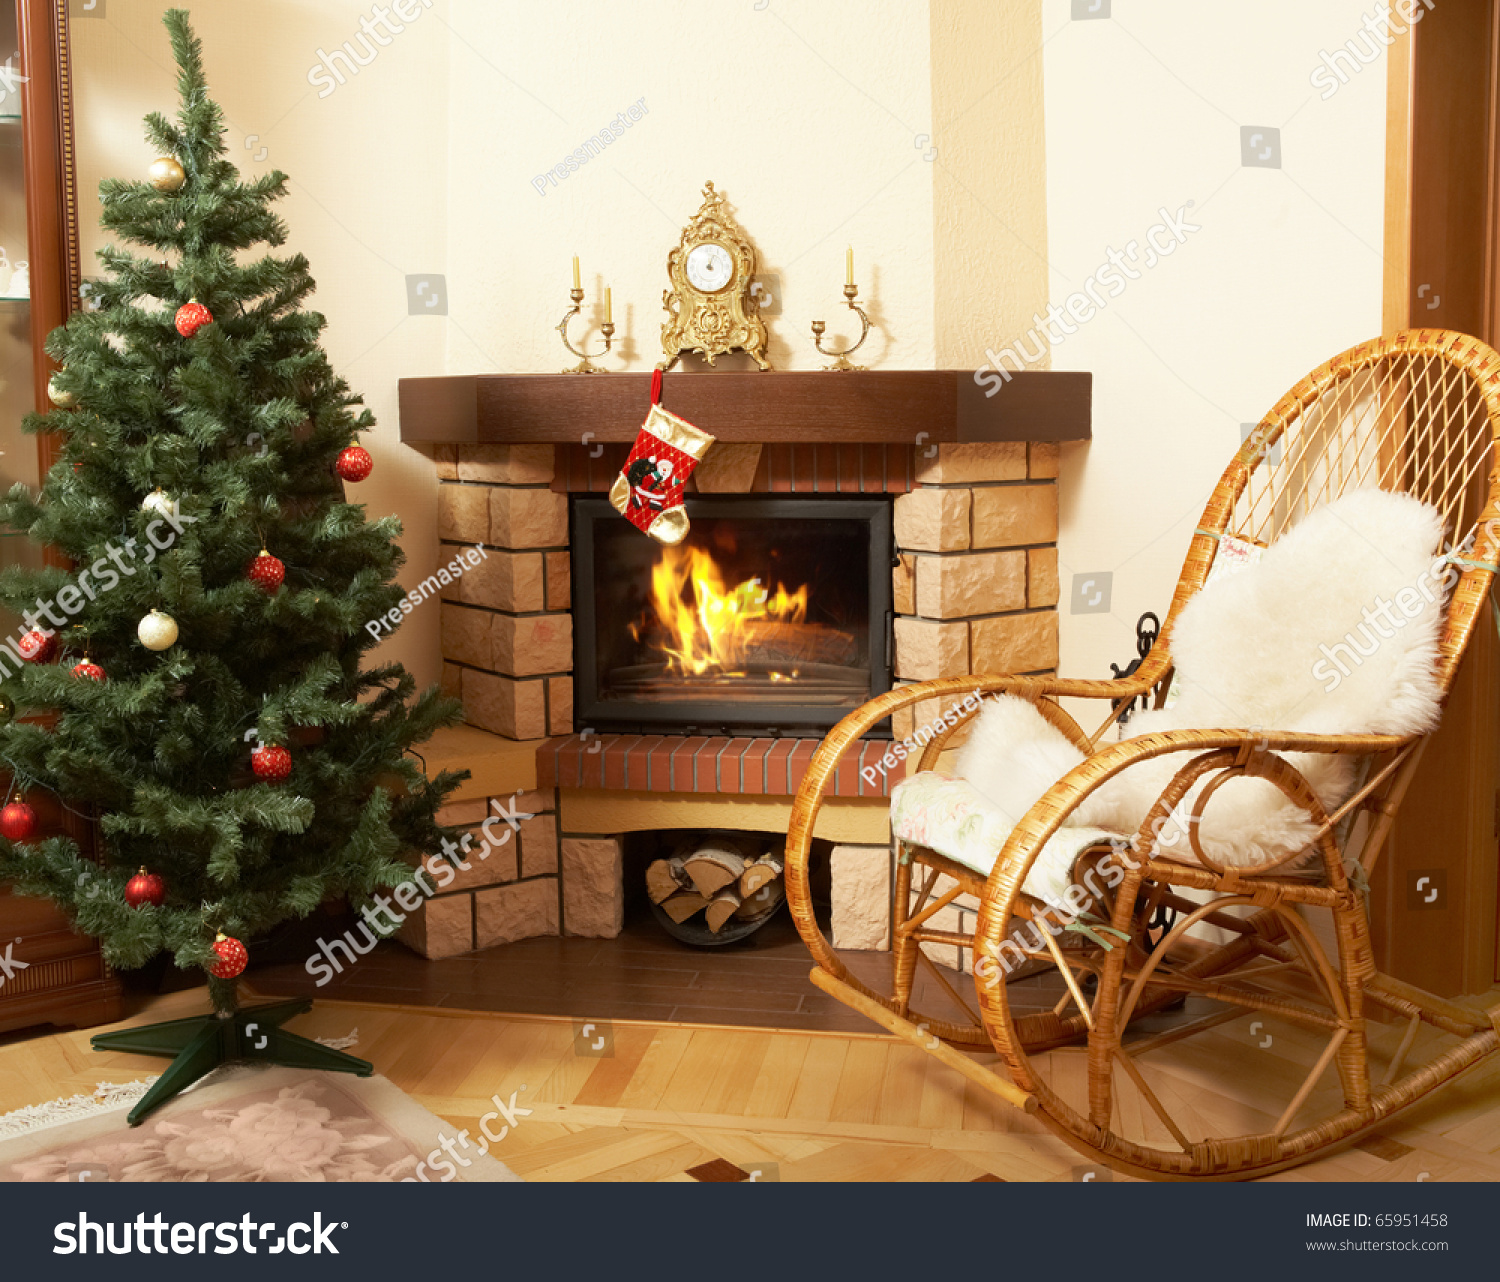 tree branch rocking chair pottery barn wicker image house room rockingchair christmas stock photo